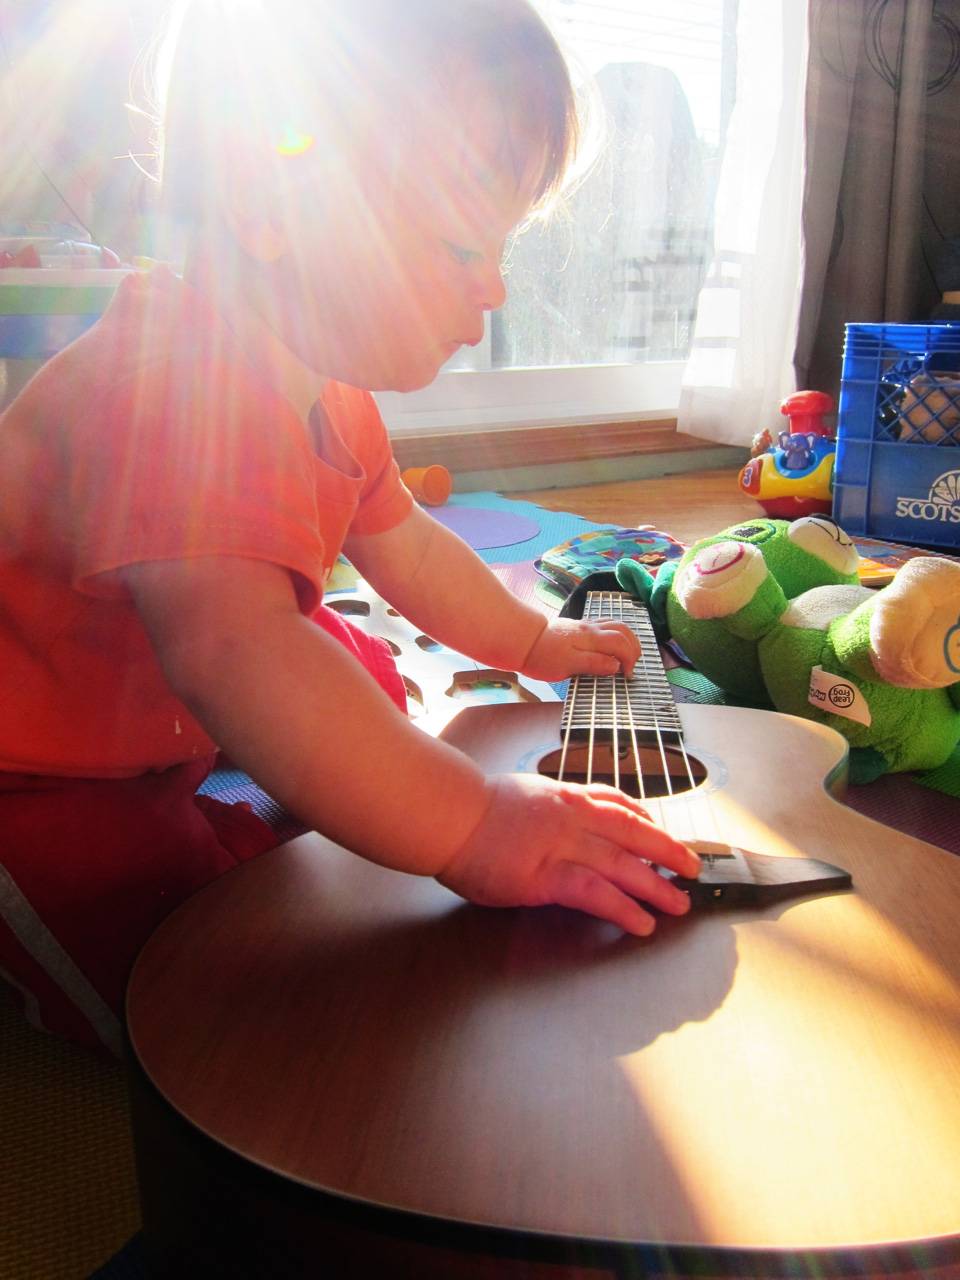 Boo playing guitar